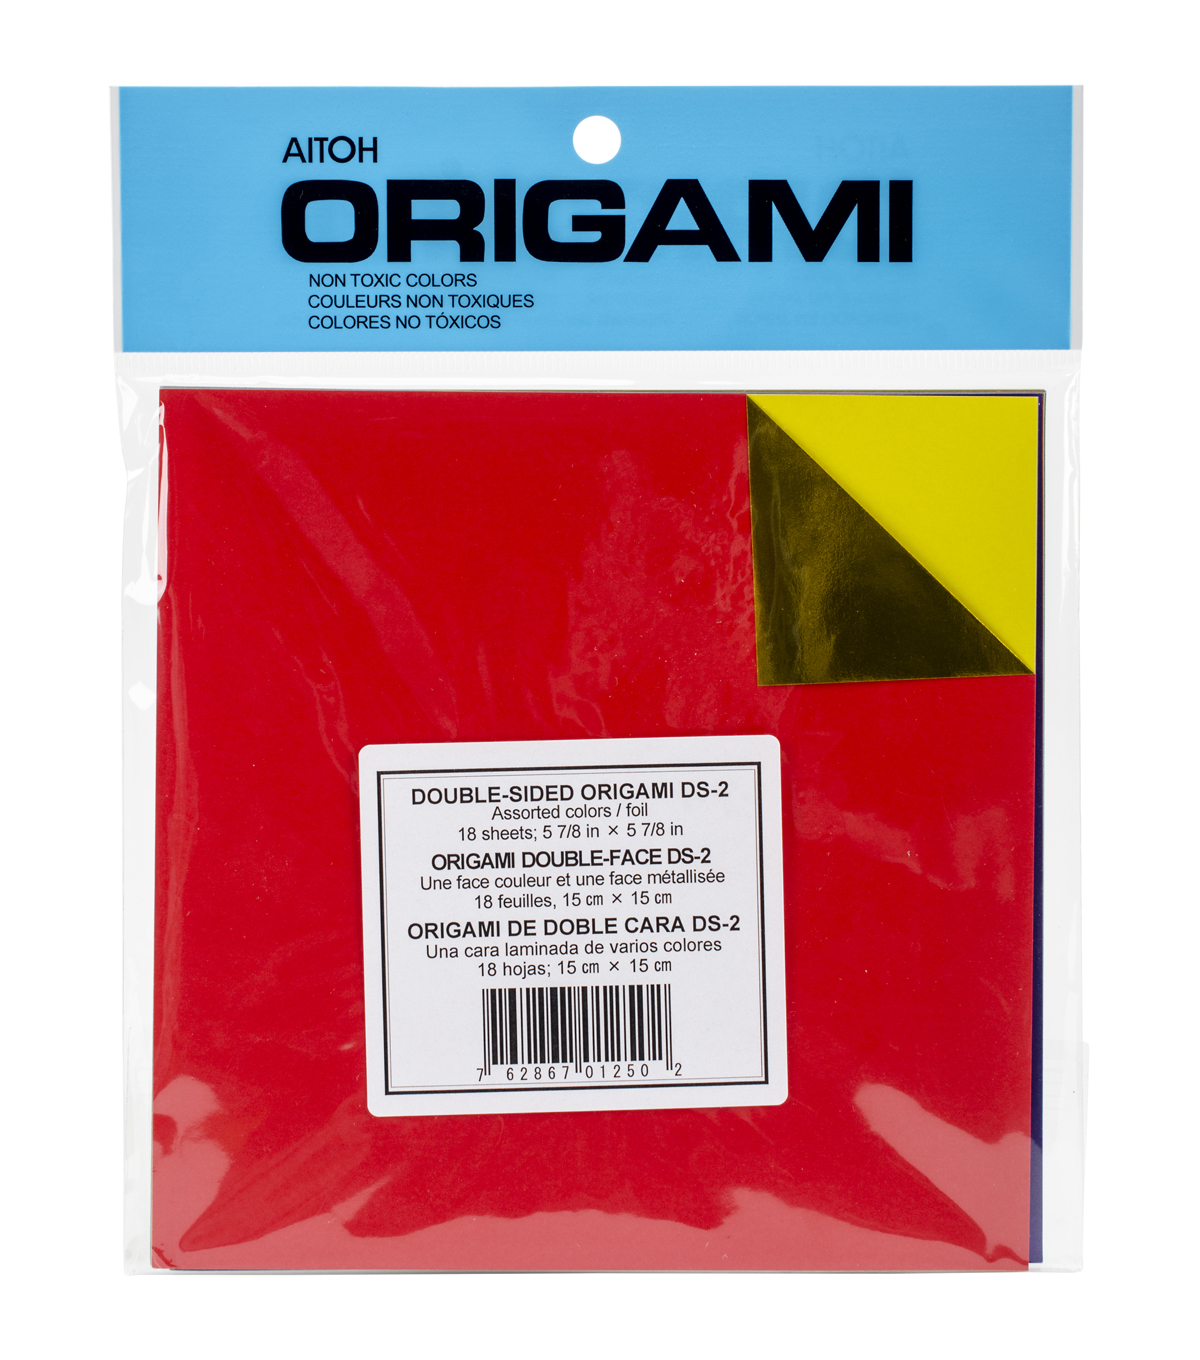 Aitoh Origami Paper Double-Sided Foil Sheets